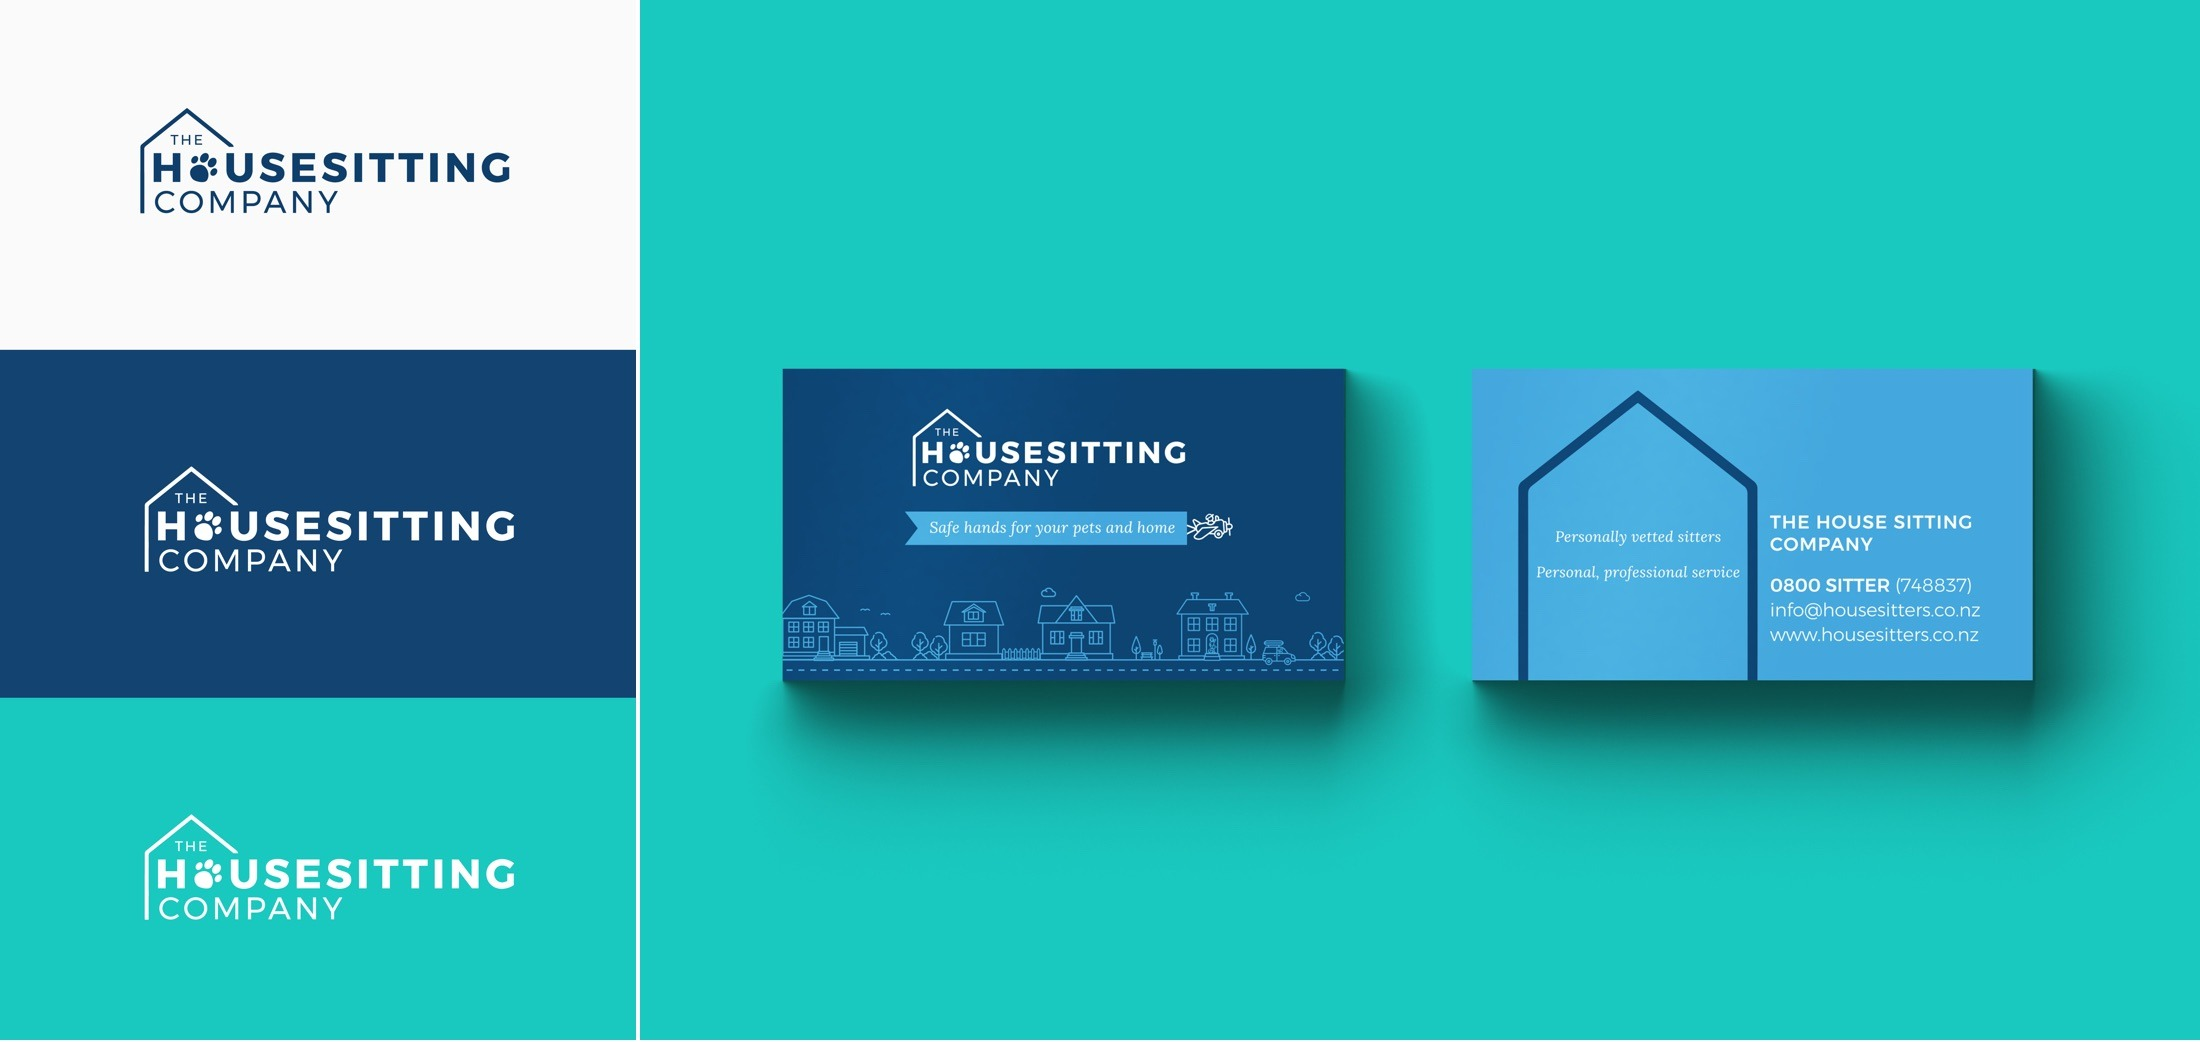 Logo Re-design - Housesitting Company